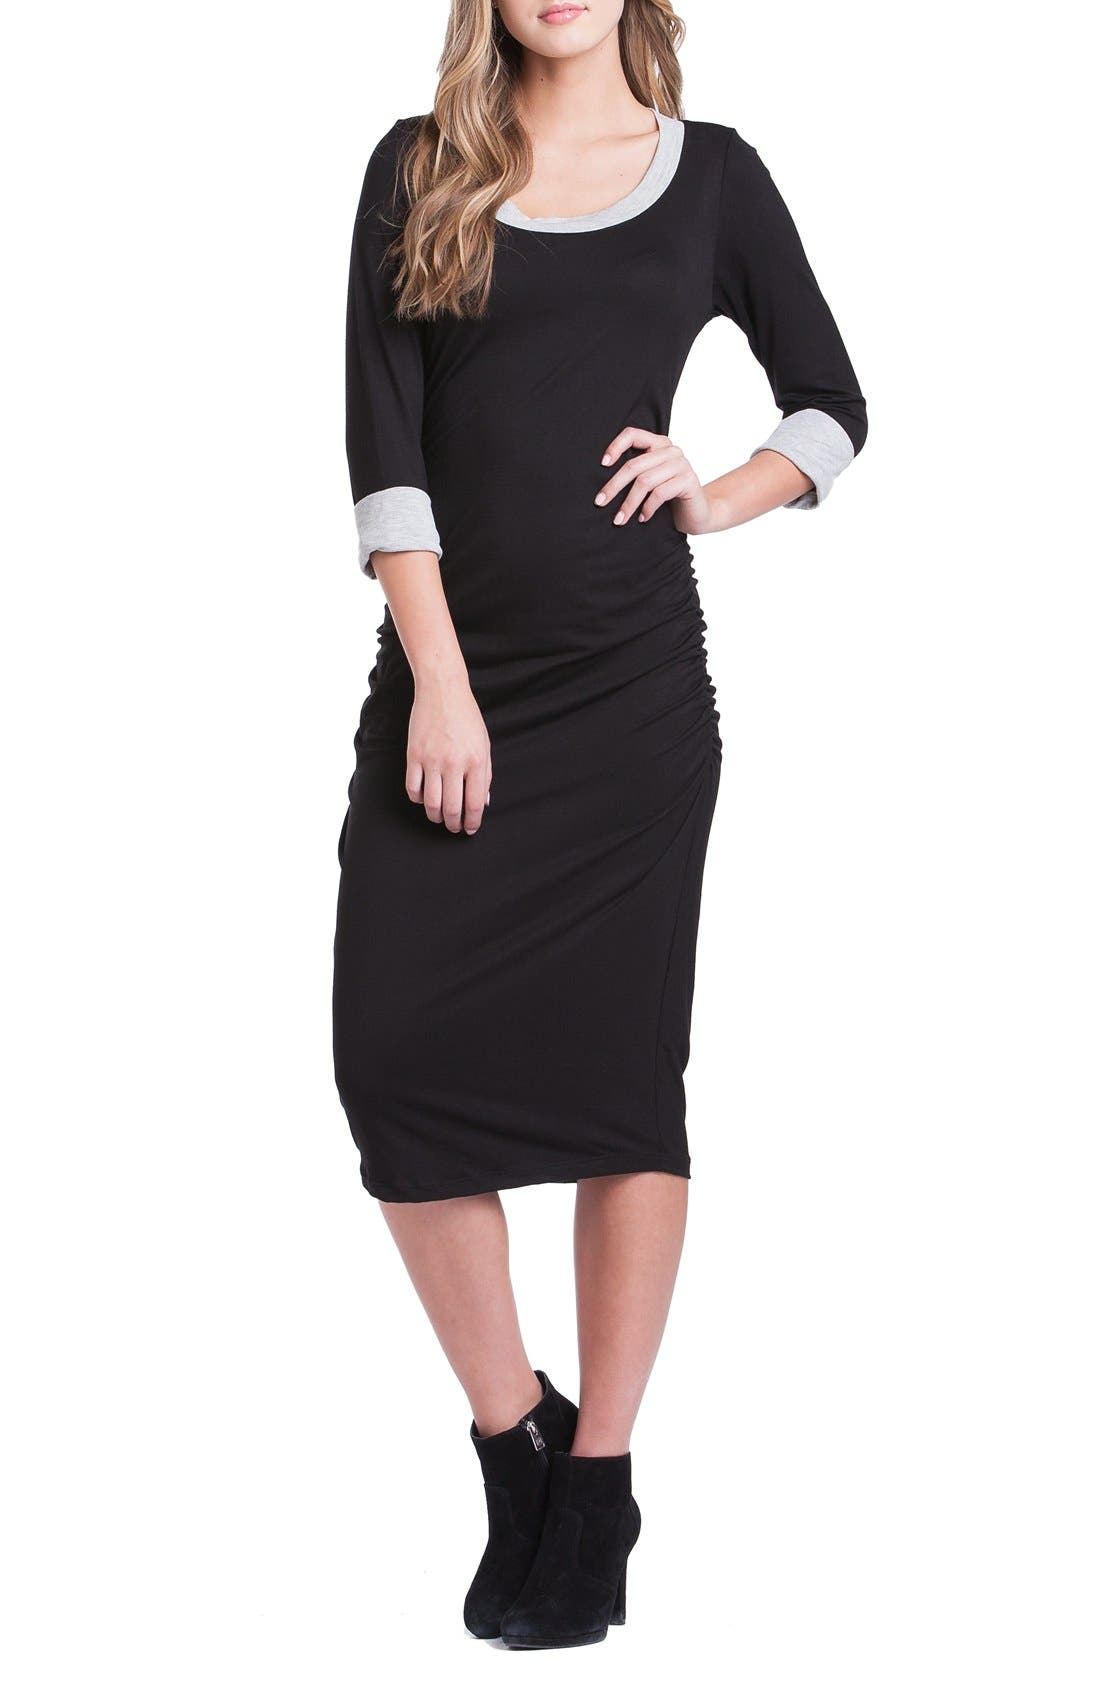 Body-Con Maternity Dress,                             Alternate thumbnail 5, color,                             001